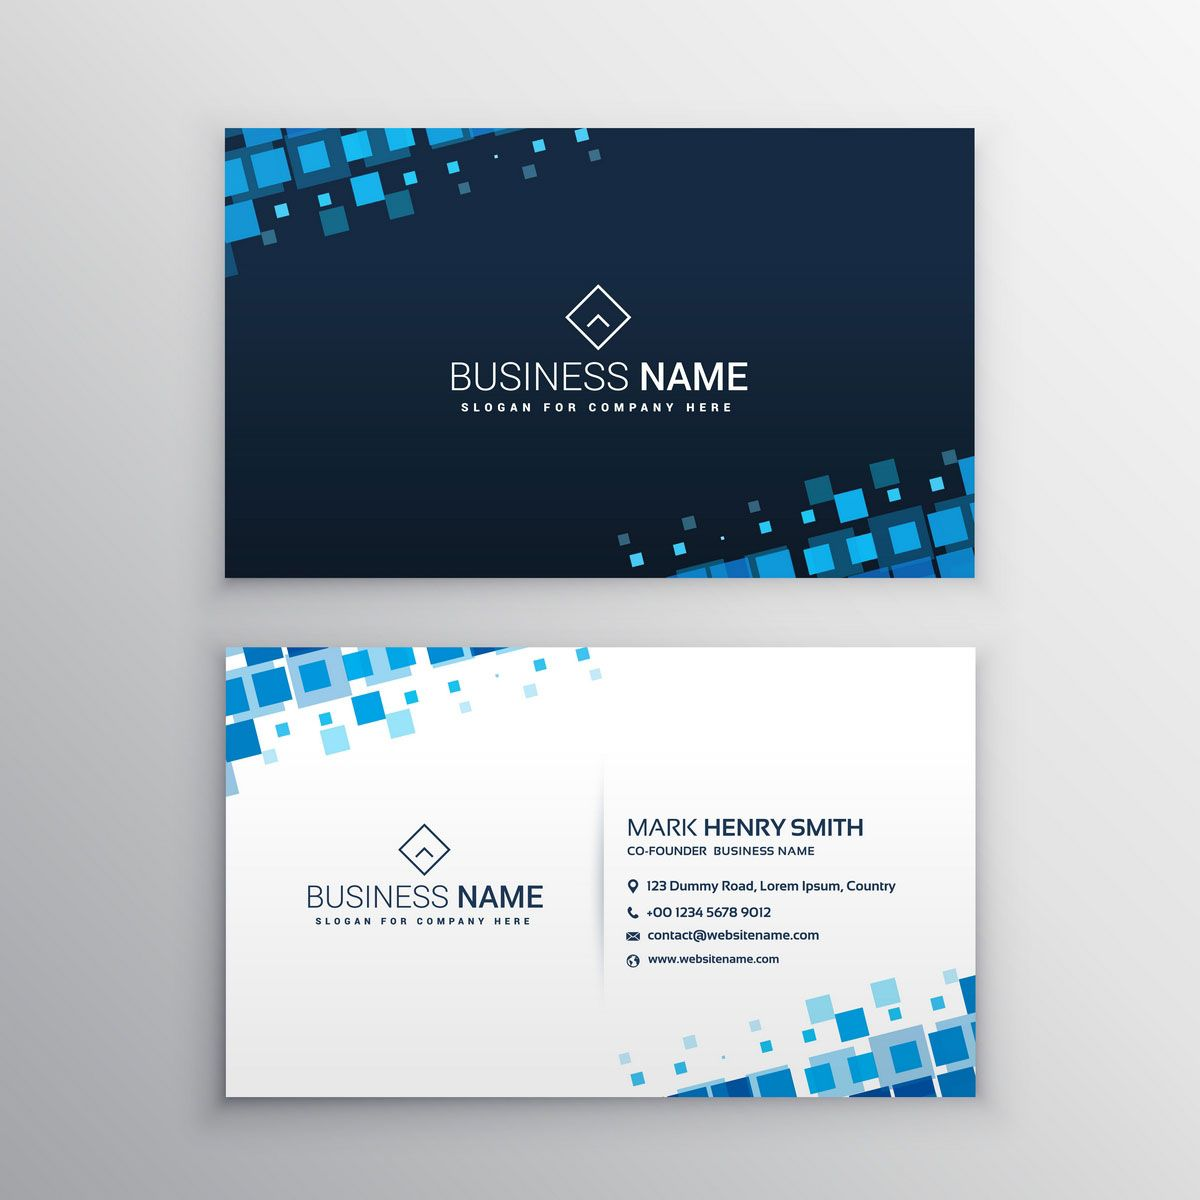 Business Card With Blue Squares Bc006 Download Business Card Professional Business Card Design Professional Business Cards